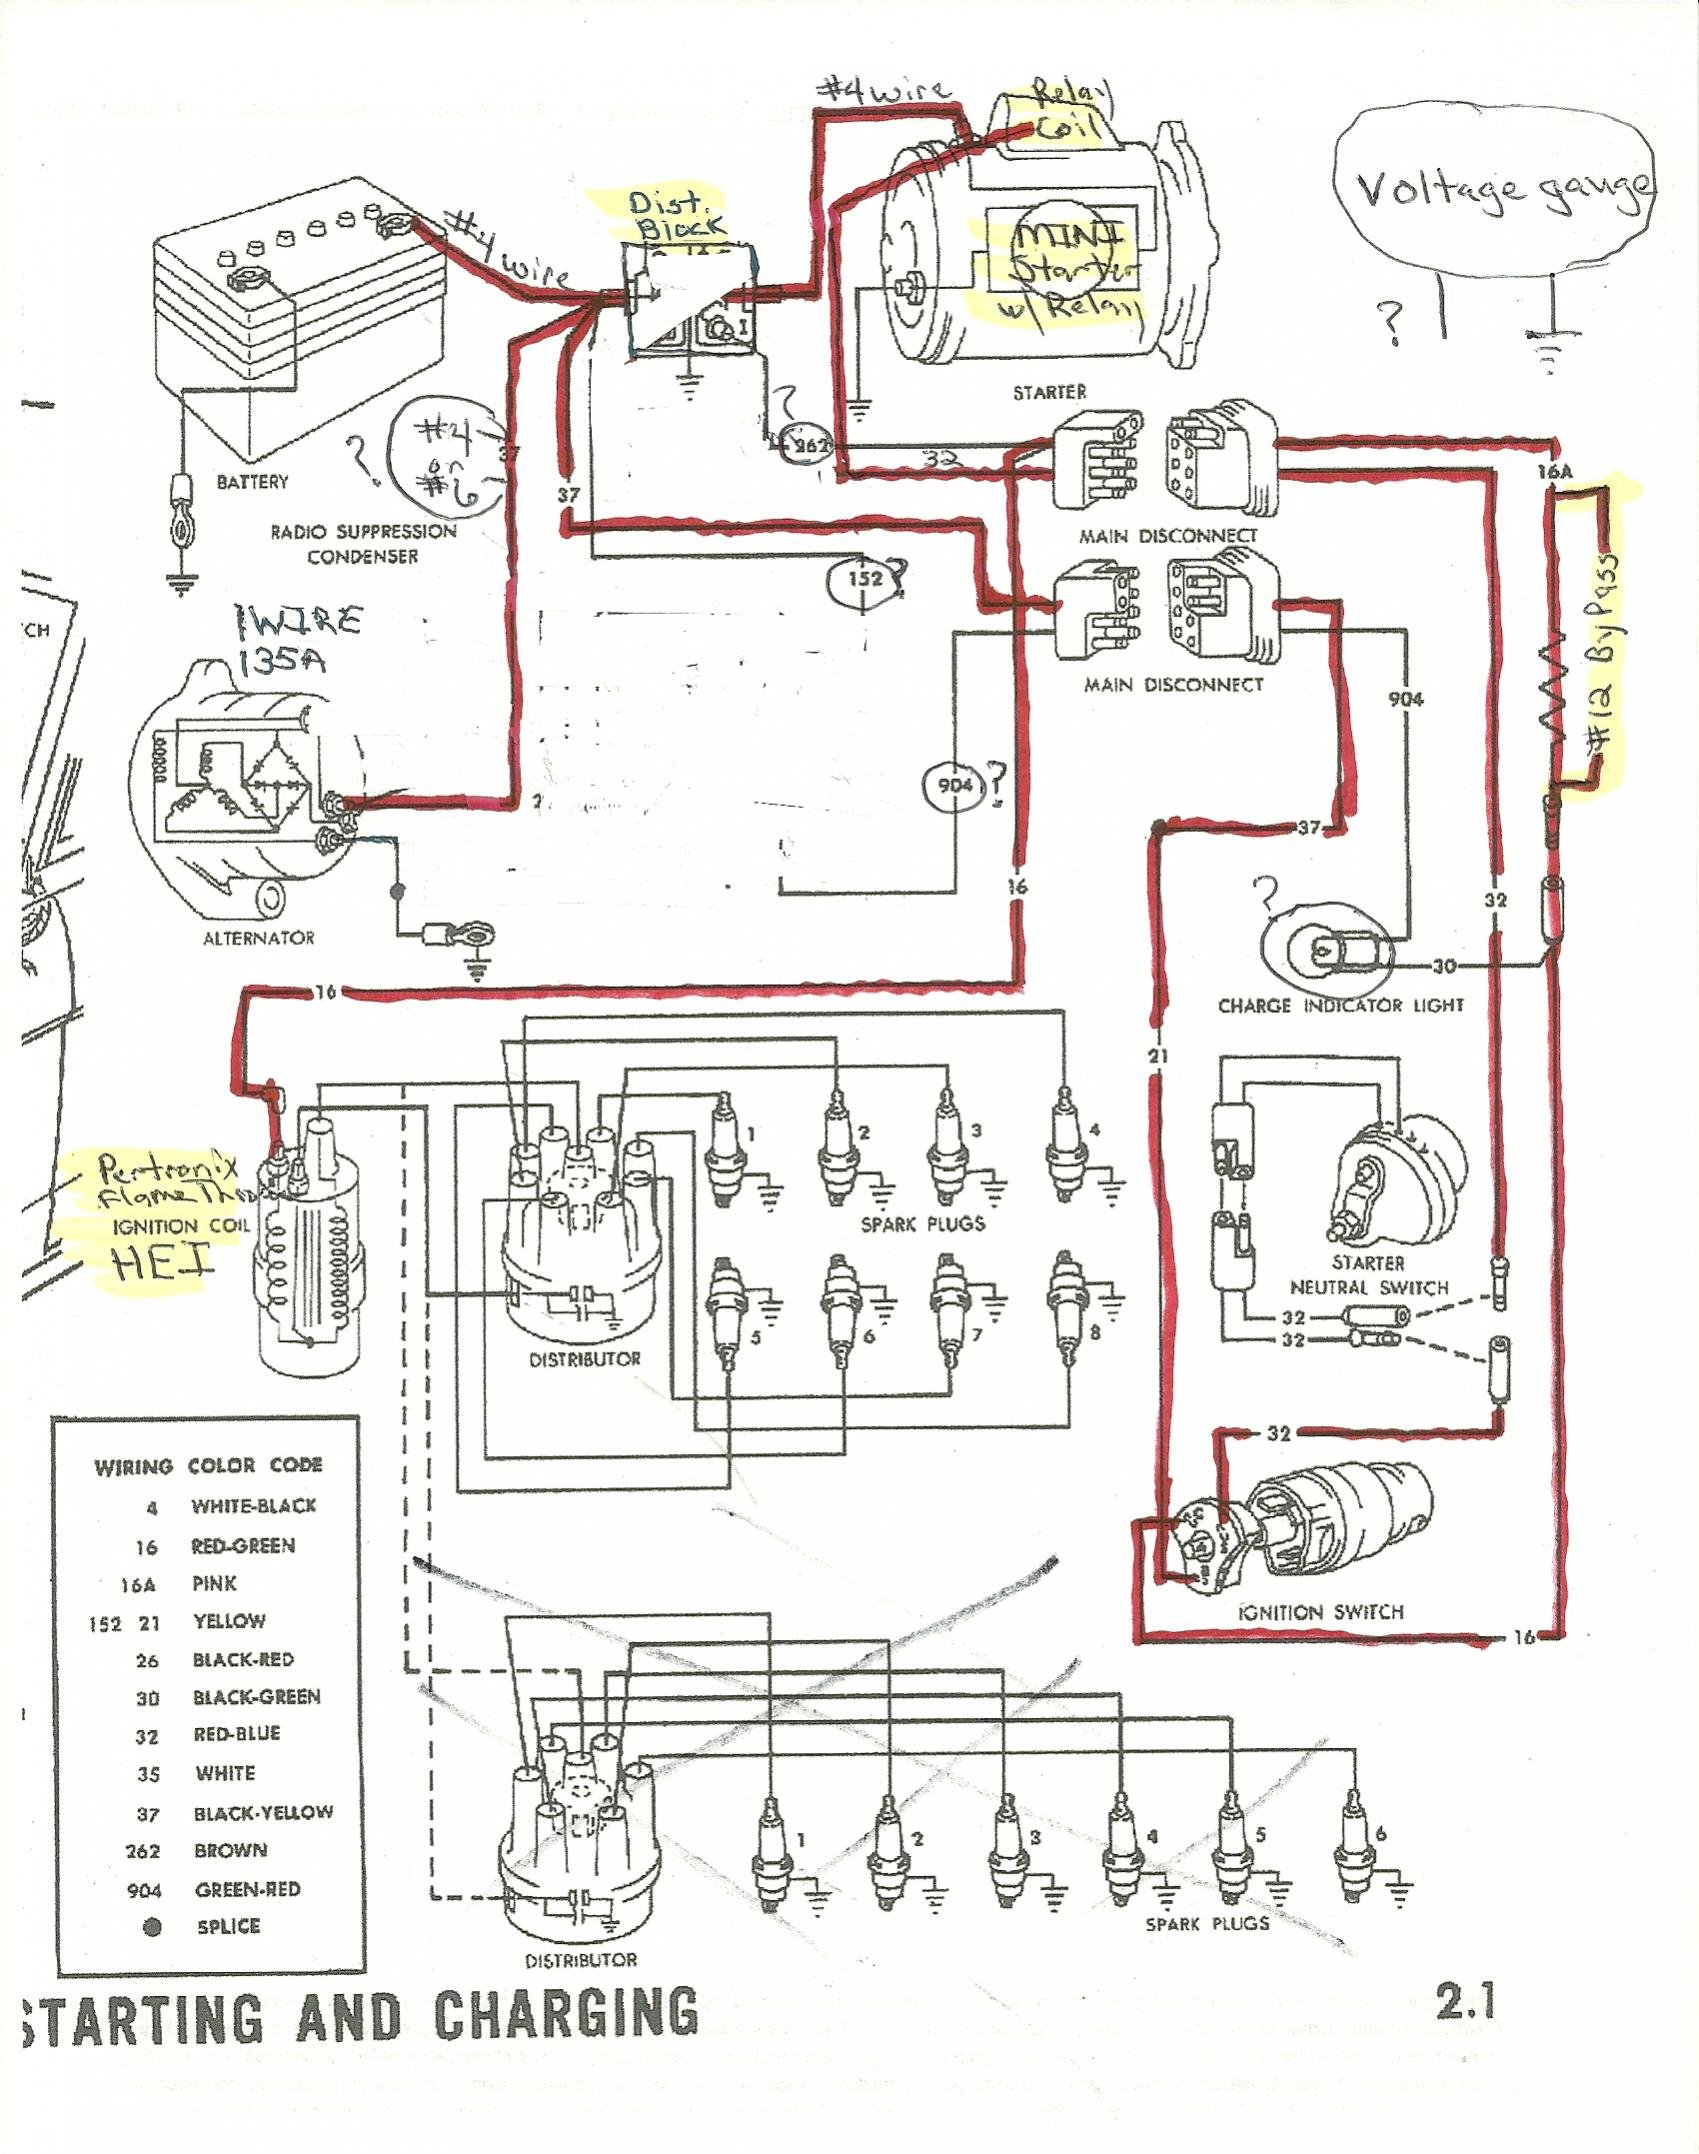 1965 ford mustang alternator wiring diagram starter relay fan single wire alternator wiring diagram 1965 ford mustang alternator wiring diagram starter relay fanclick image for larger version name scan0001 jpg